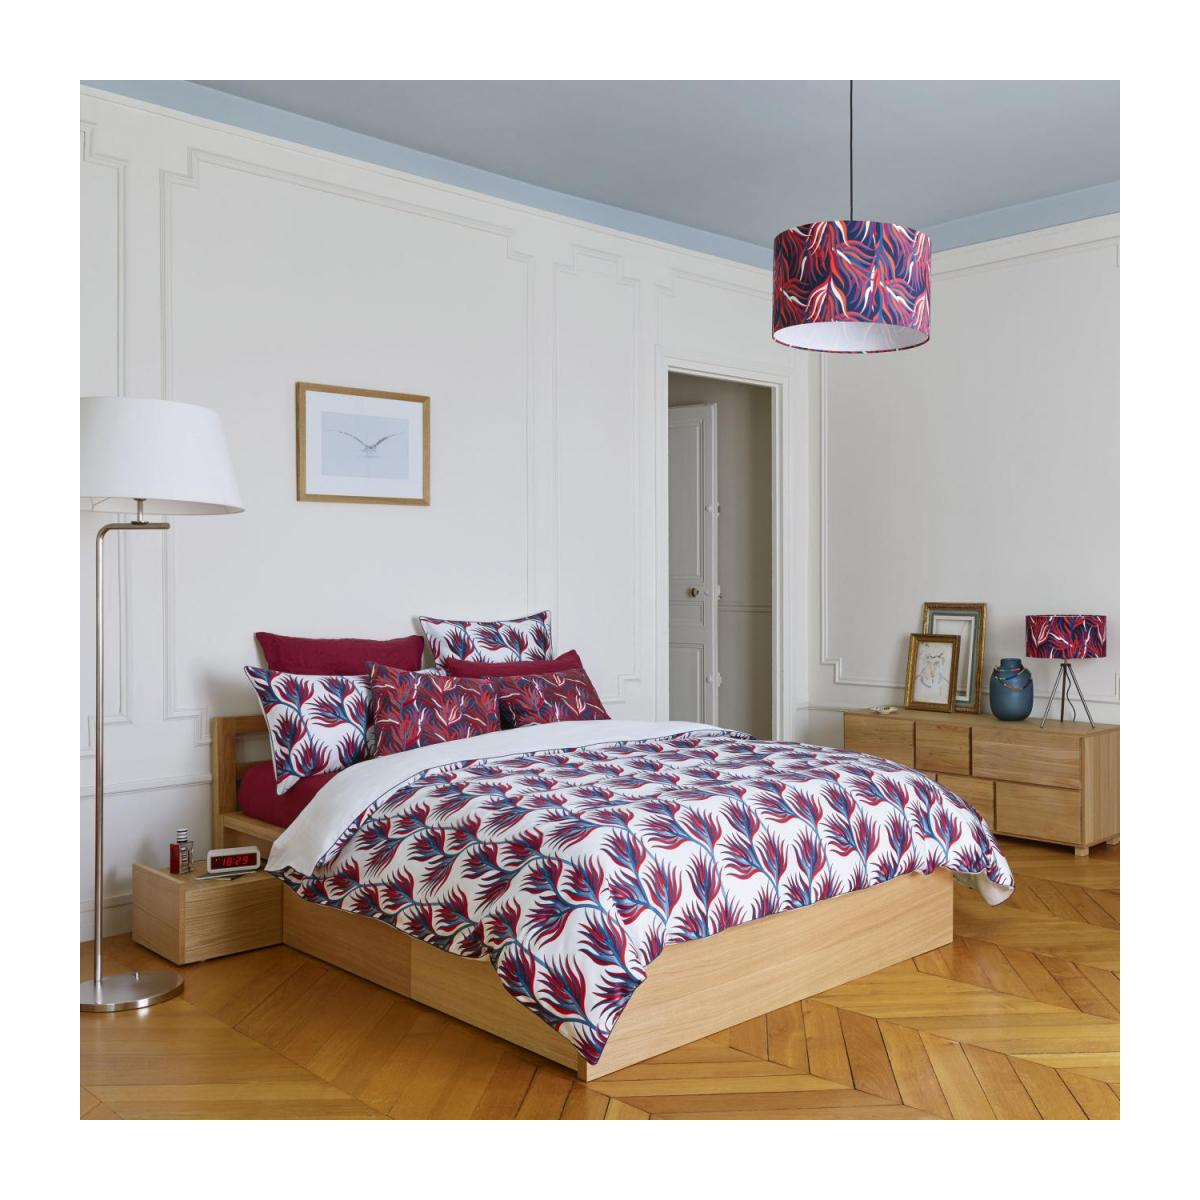 kilys housse de couette 200x200cm en coton motifs design by floriane jacques habitat. Black Bedroom Furniture Sets. Home Design Ideas